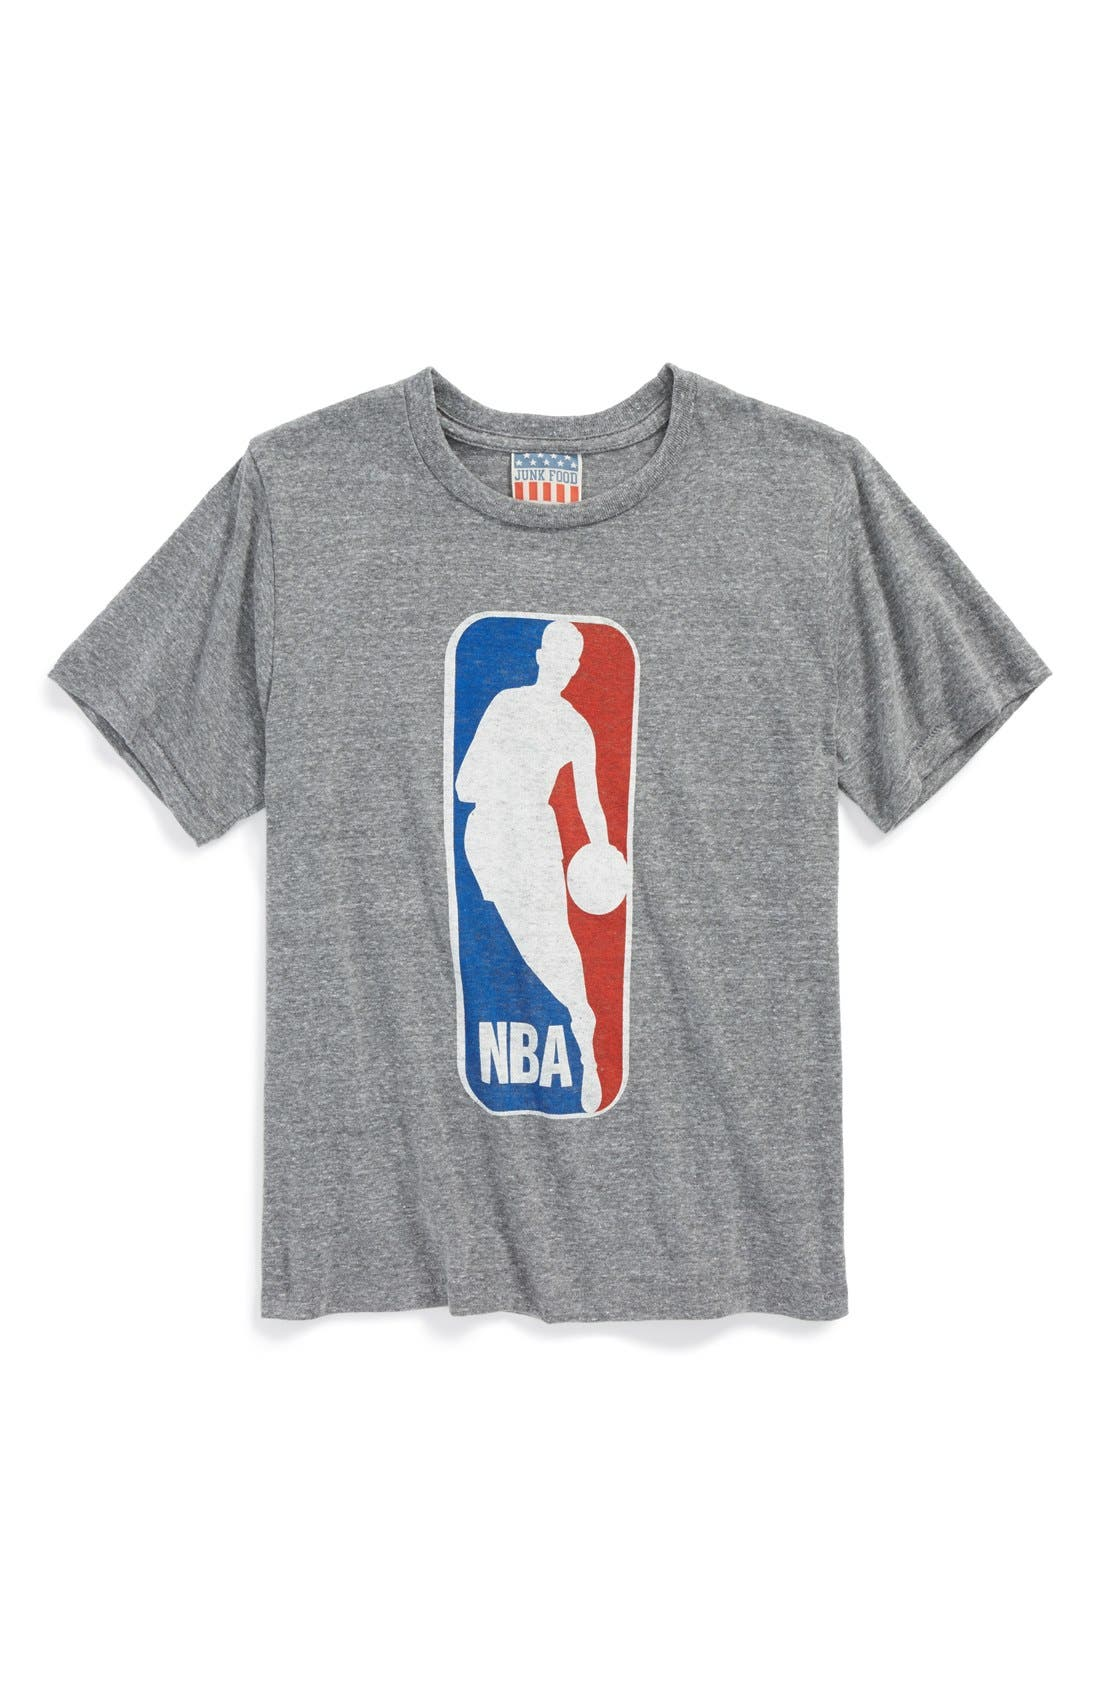 Main Image - Junk Food 'NBA Logo' Graphic T-Shirt (Toddler Boys, Little Boys & Big Boys)